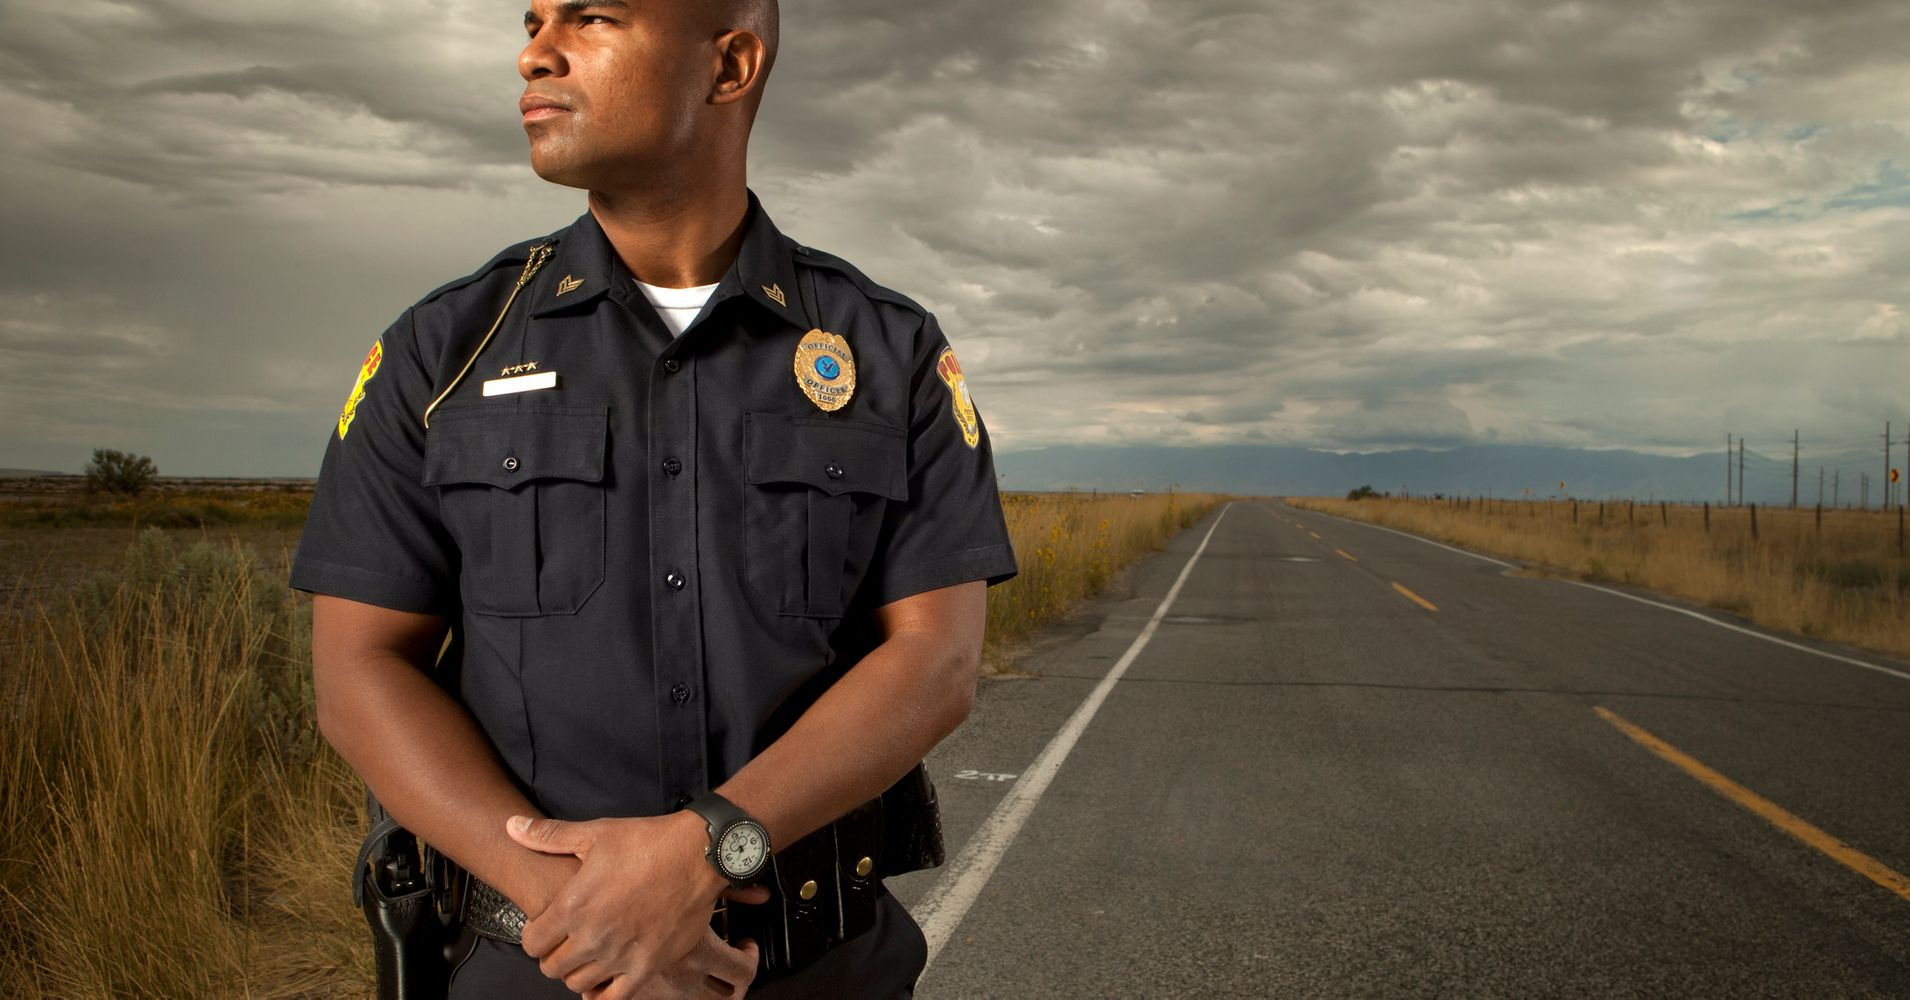 how to be a police officer Read our detailed list of requirements and steps for becoming a police officer in ohio.